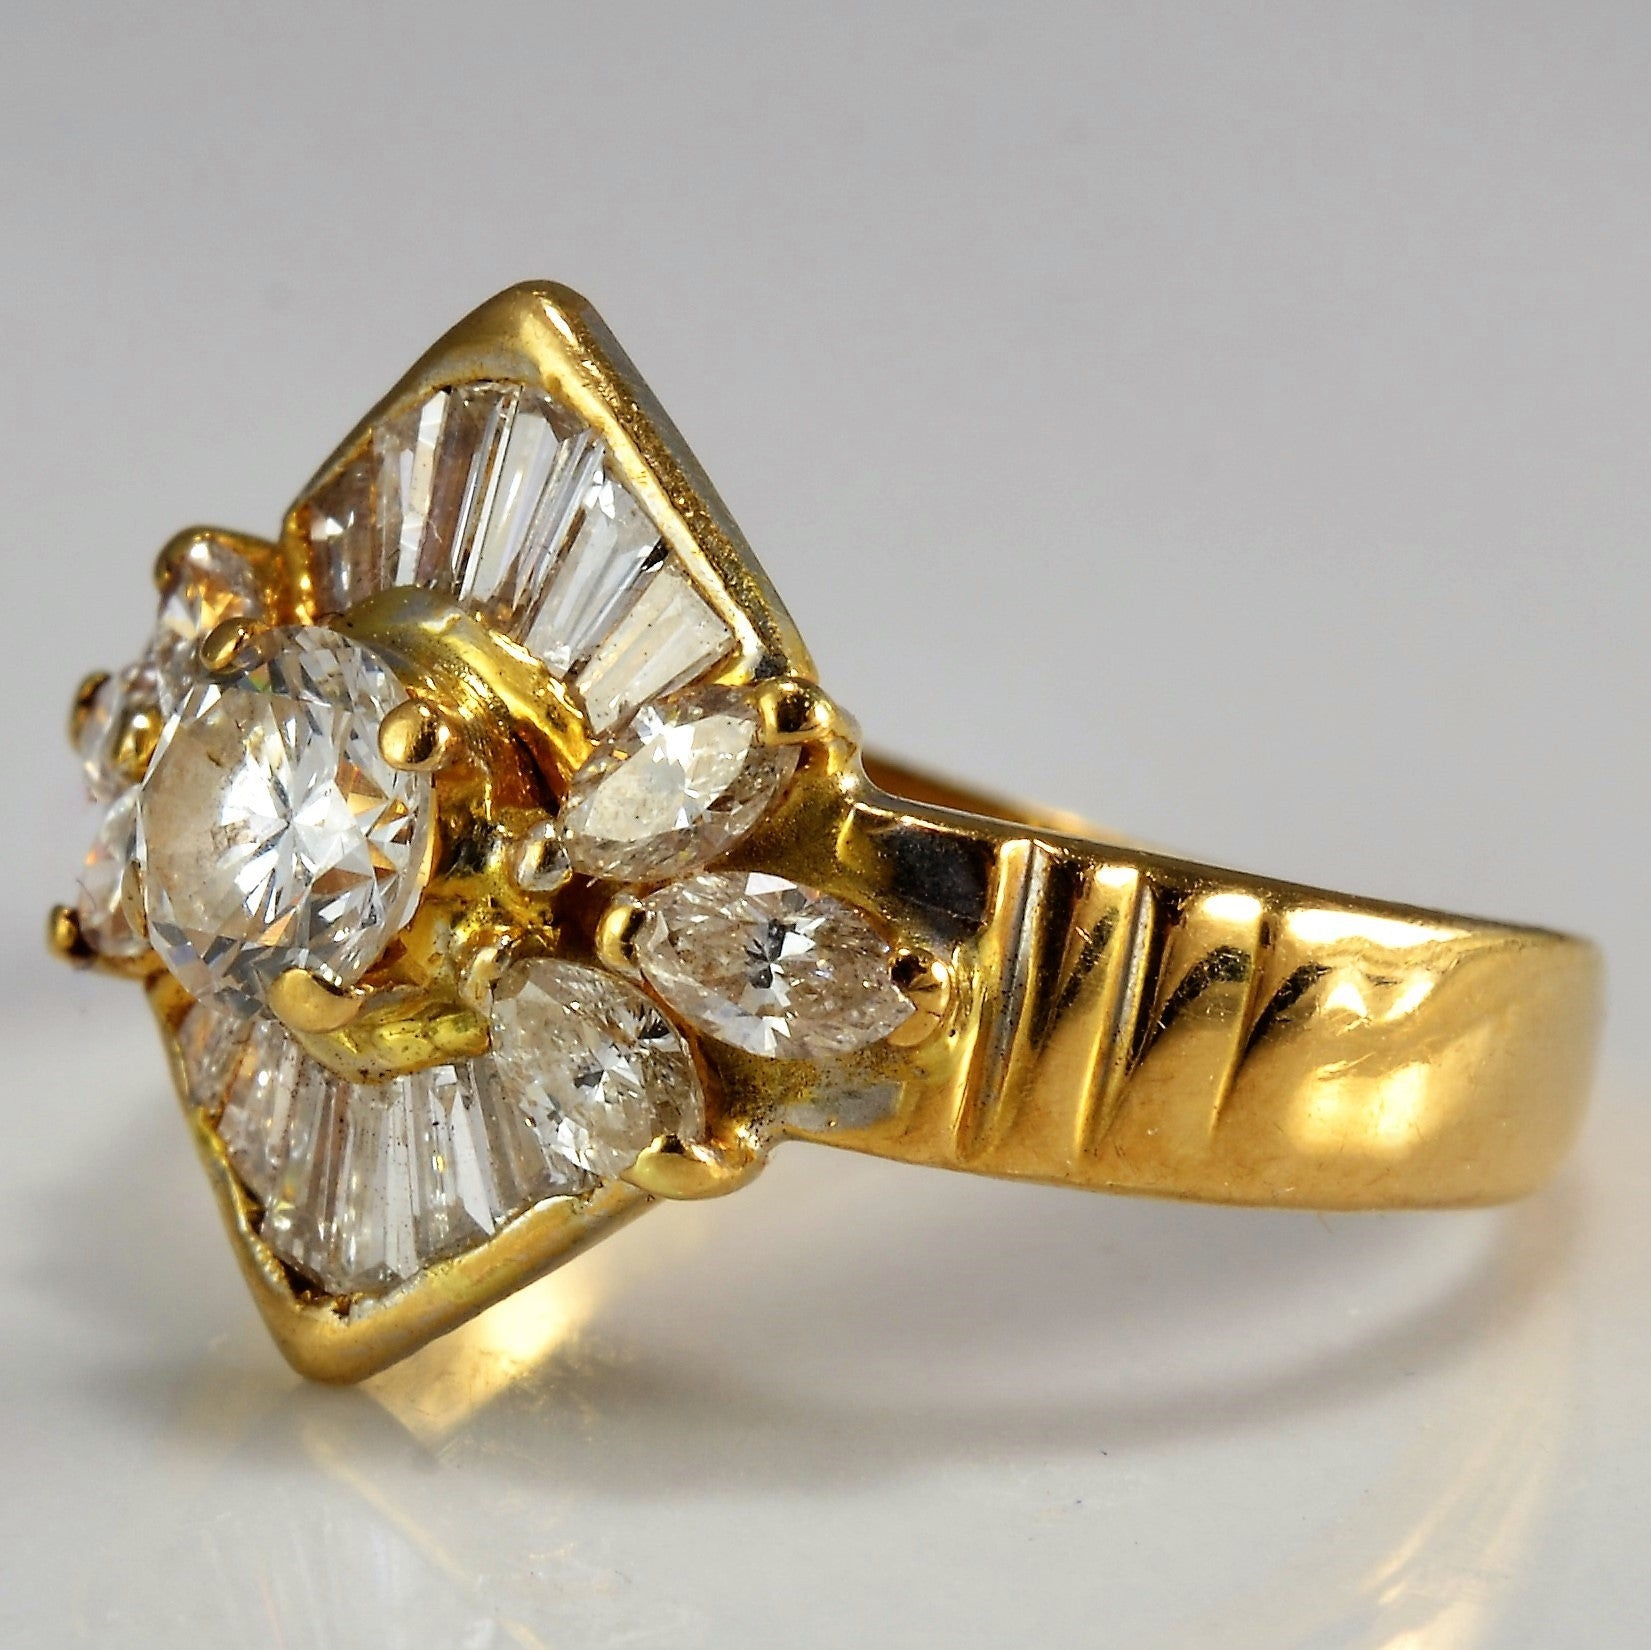 Vintage Multi Stone Diamond Engagement Ring | 0.97 ctw, SZ 4.75 |